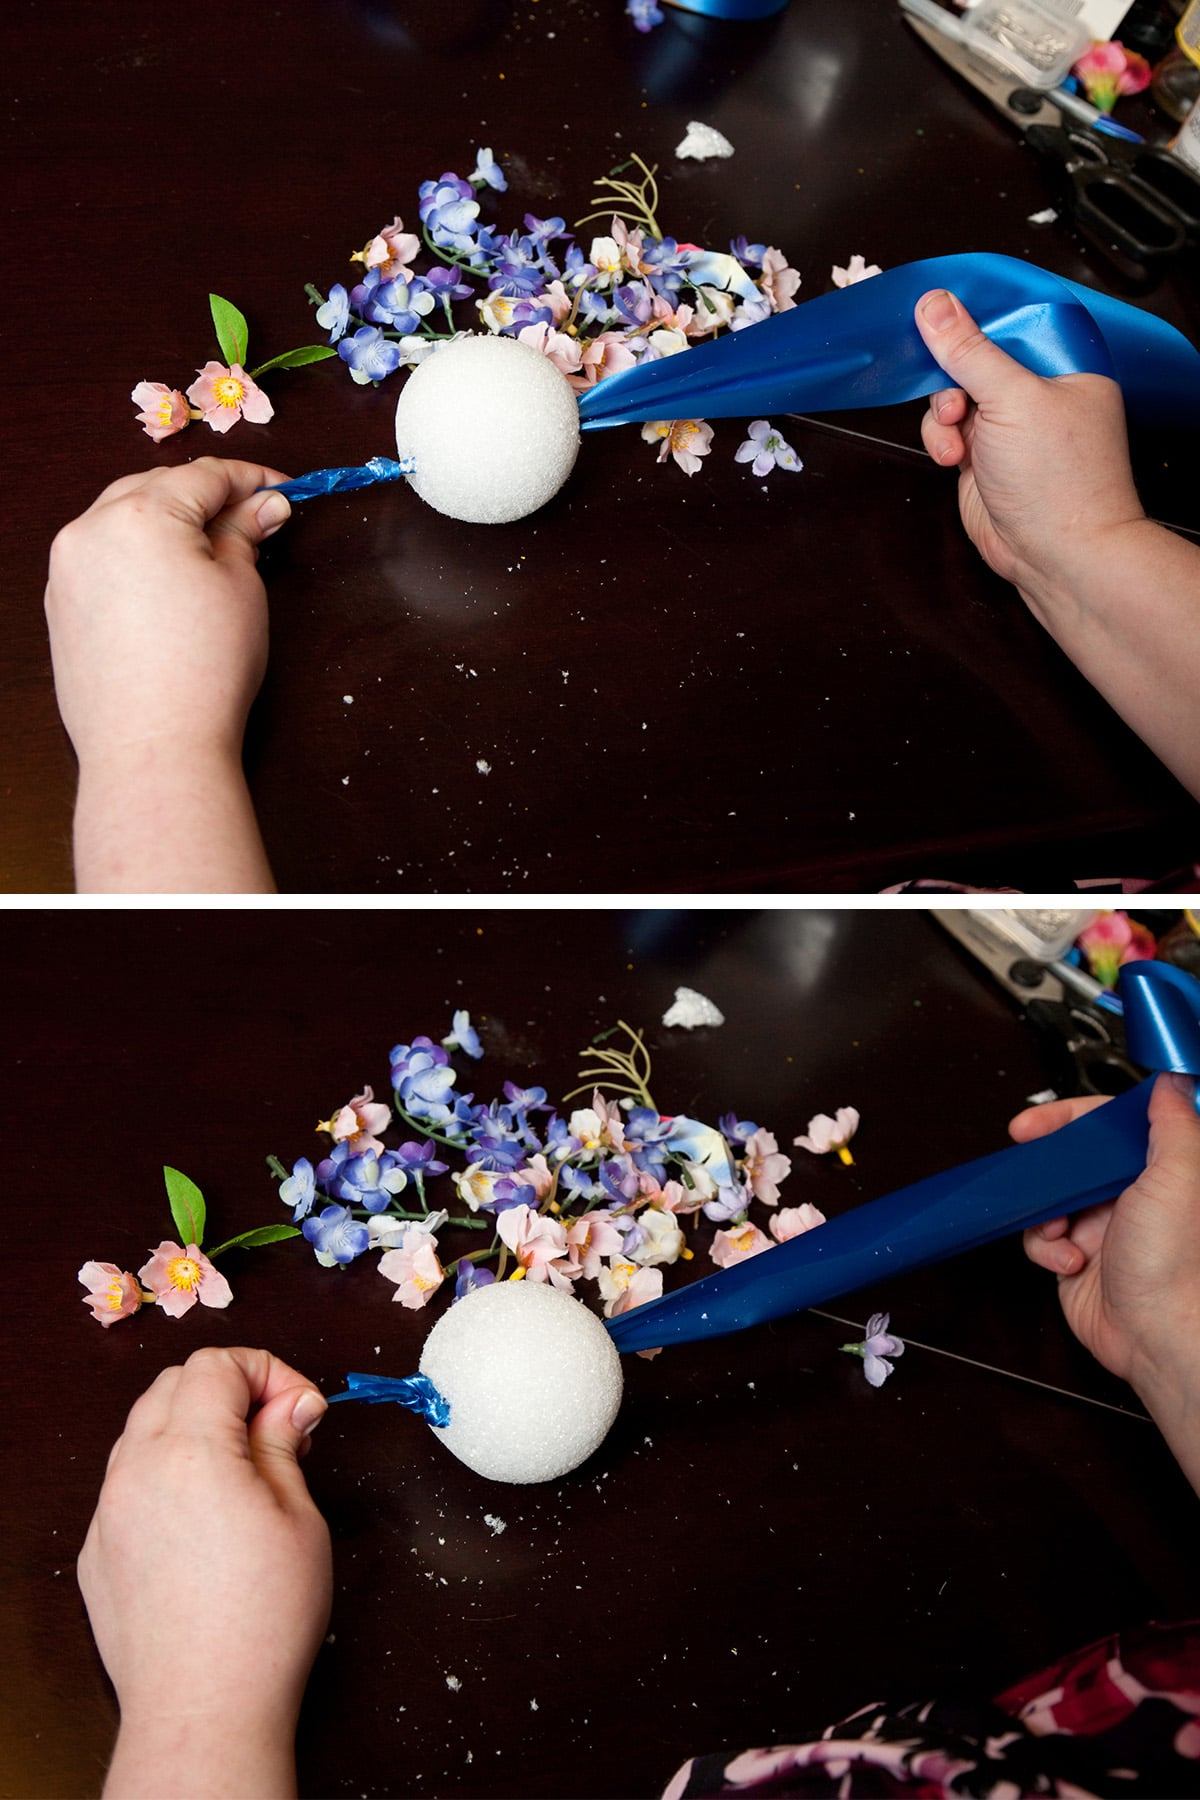 Two hands feed the ribbon through the styrofoam and knot it at the other end.